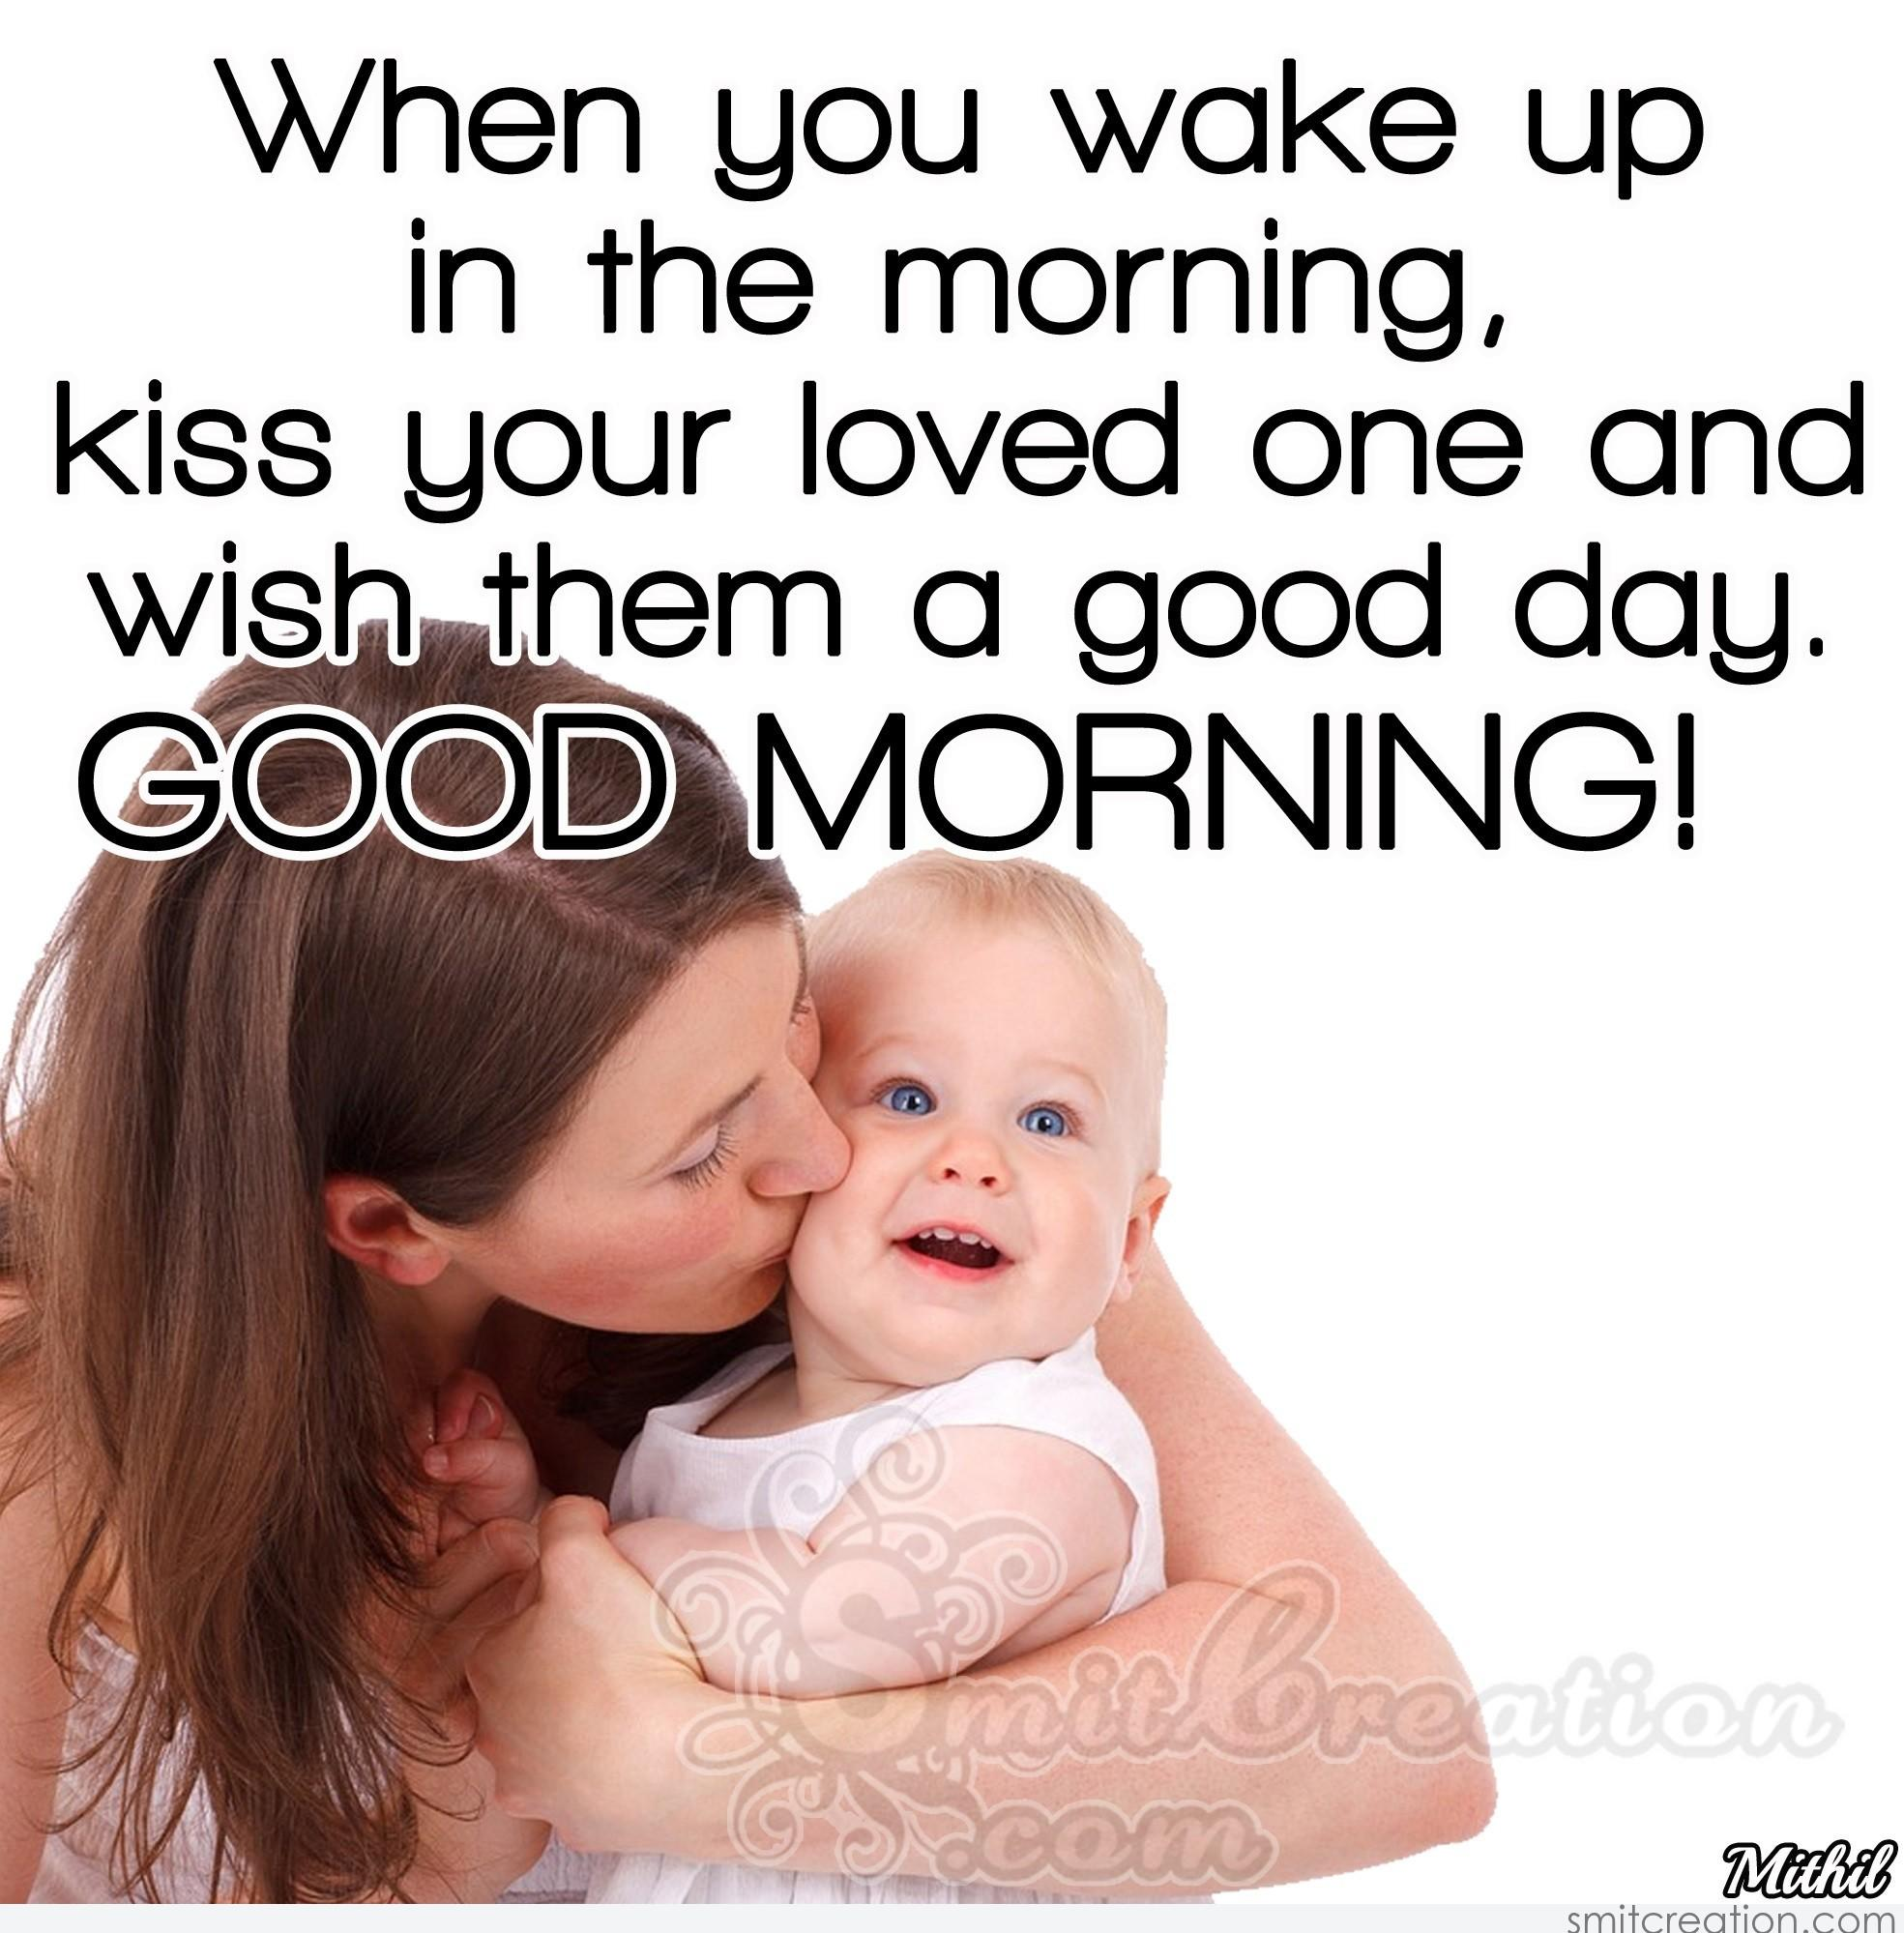 Good Morning Love One : Good morning kiss your loved one and wish them a